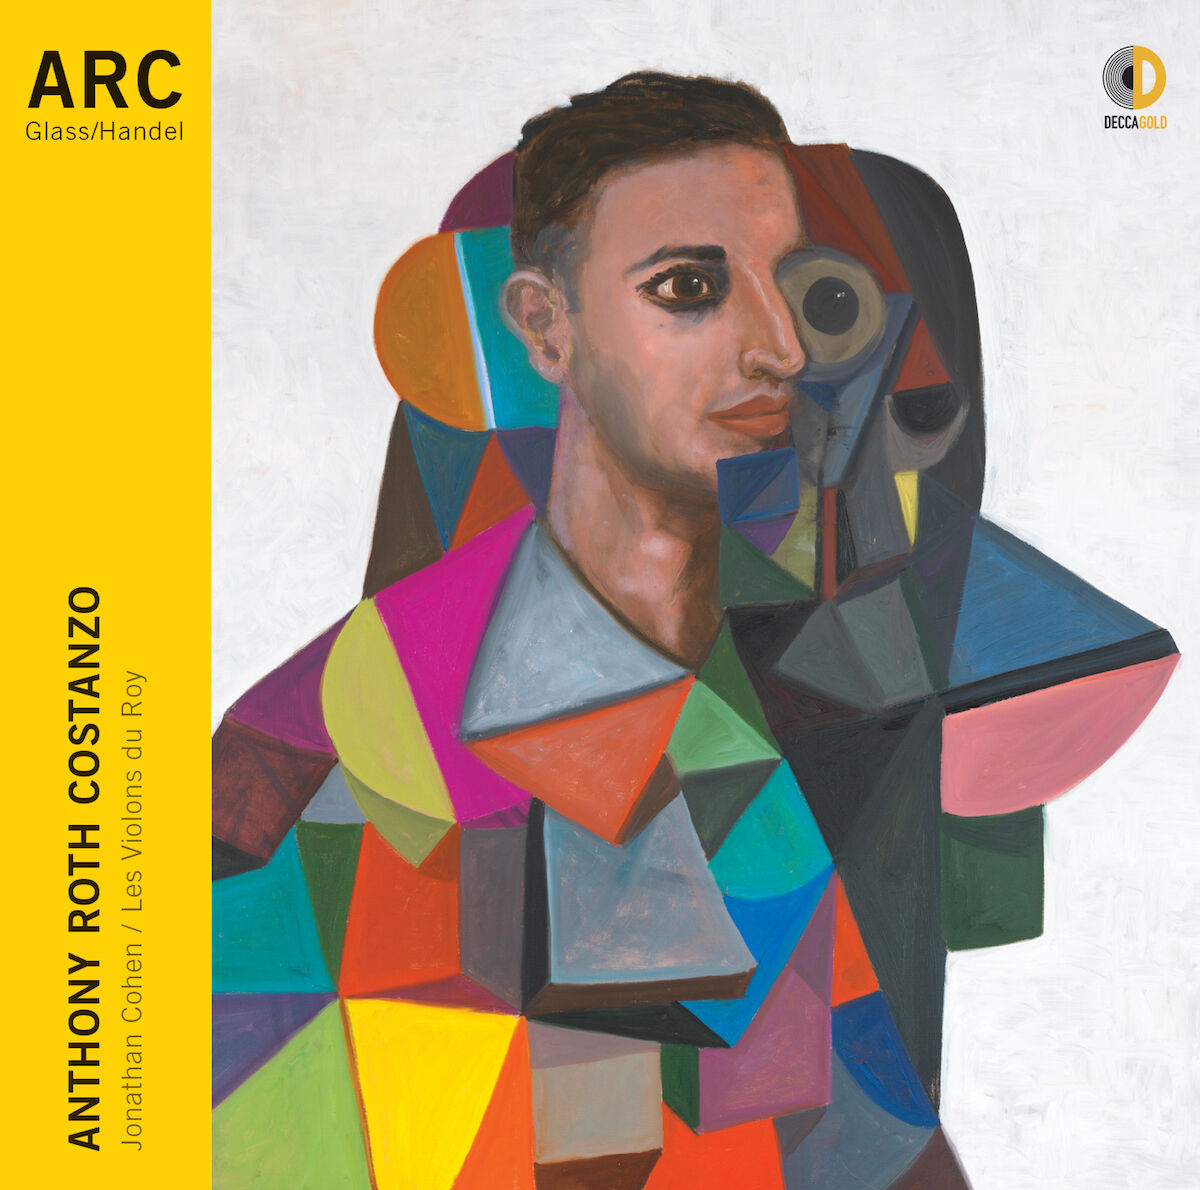 The cover of Anthony Roth Costanzo's new album, ARC. Courtesy Decca Gold.